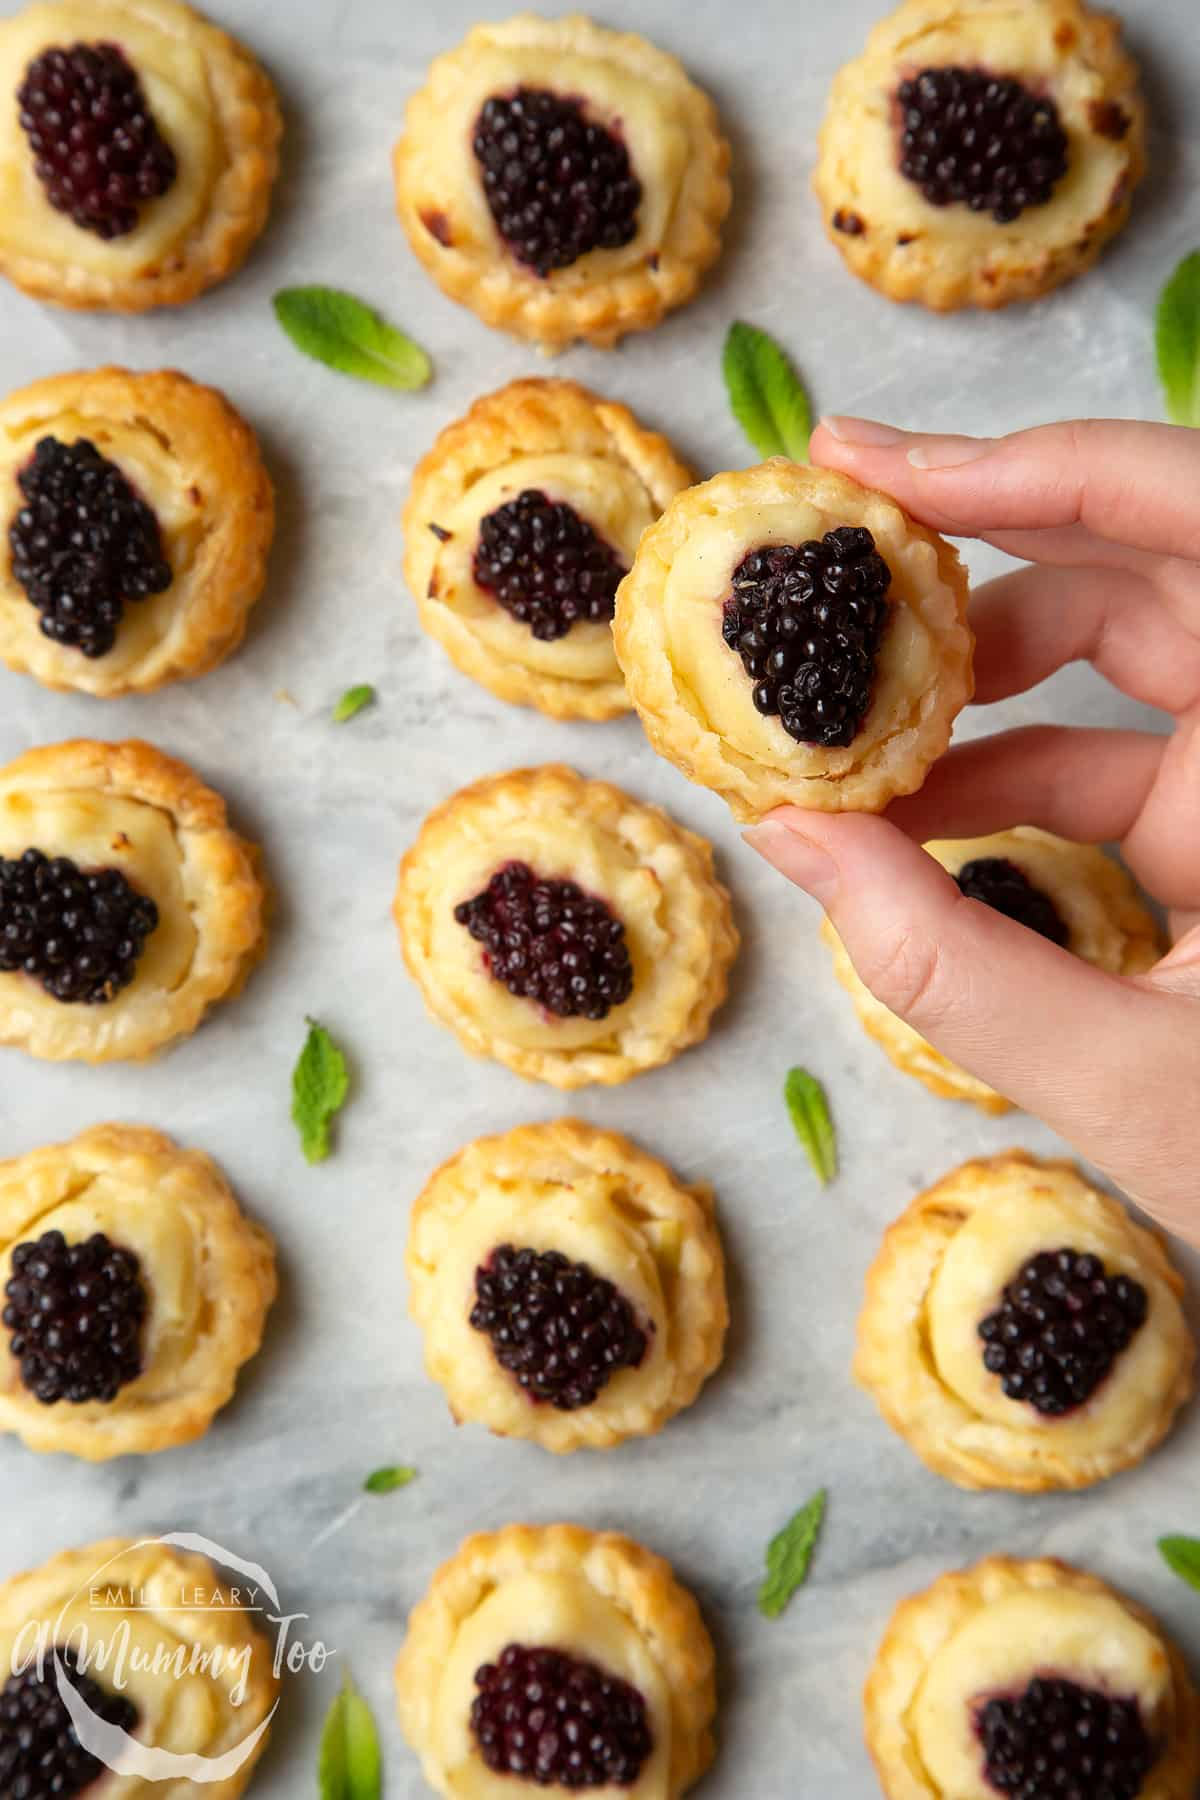 Sixteen blackberry tartlets comprised of a small puff pastry disc topped with sliced apple, pastry cream and a blackberry sit on a marble board with tiny mint leaves scattered around them. A hand holds one of the tarts.